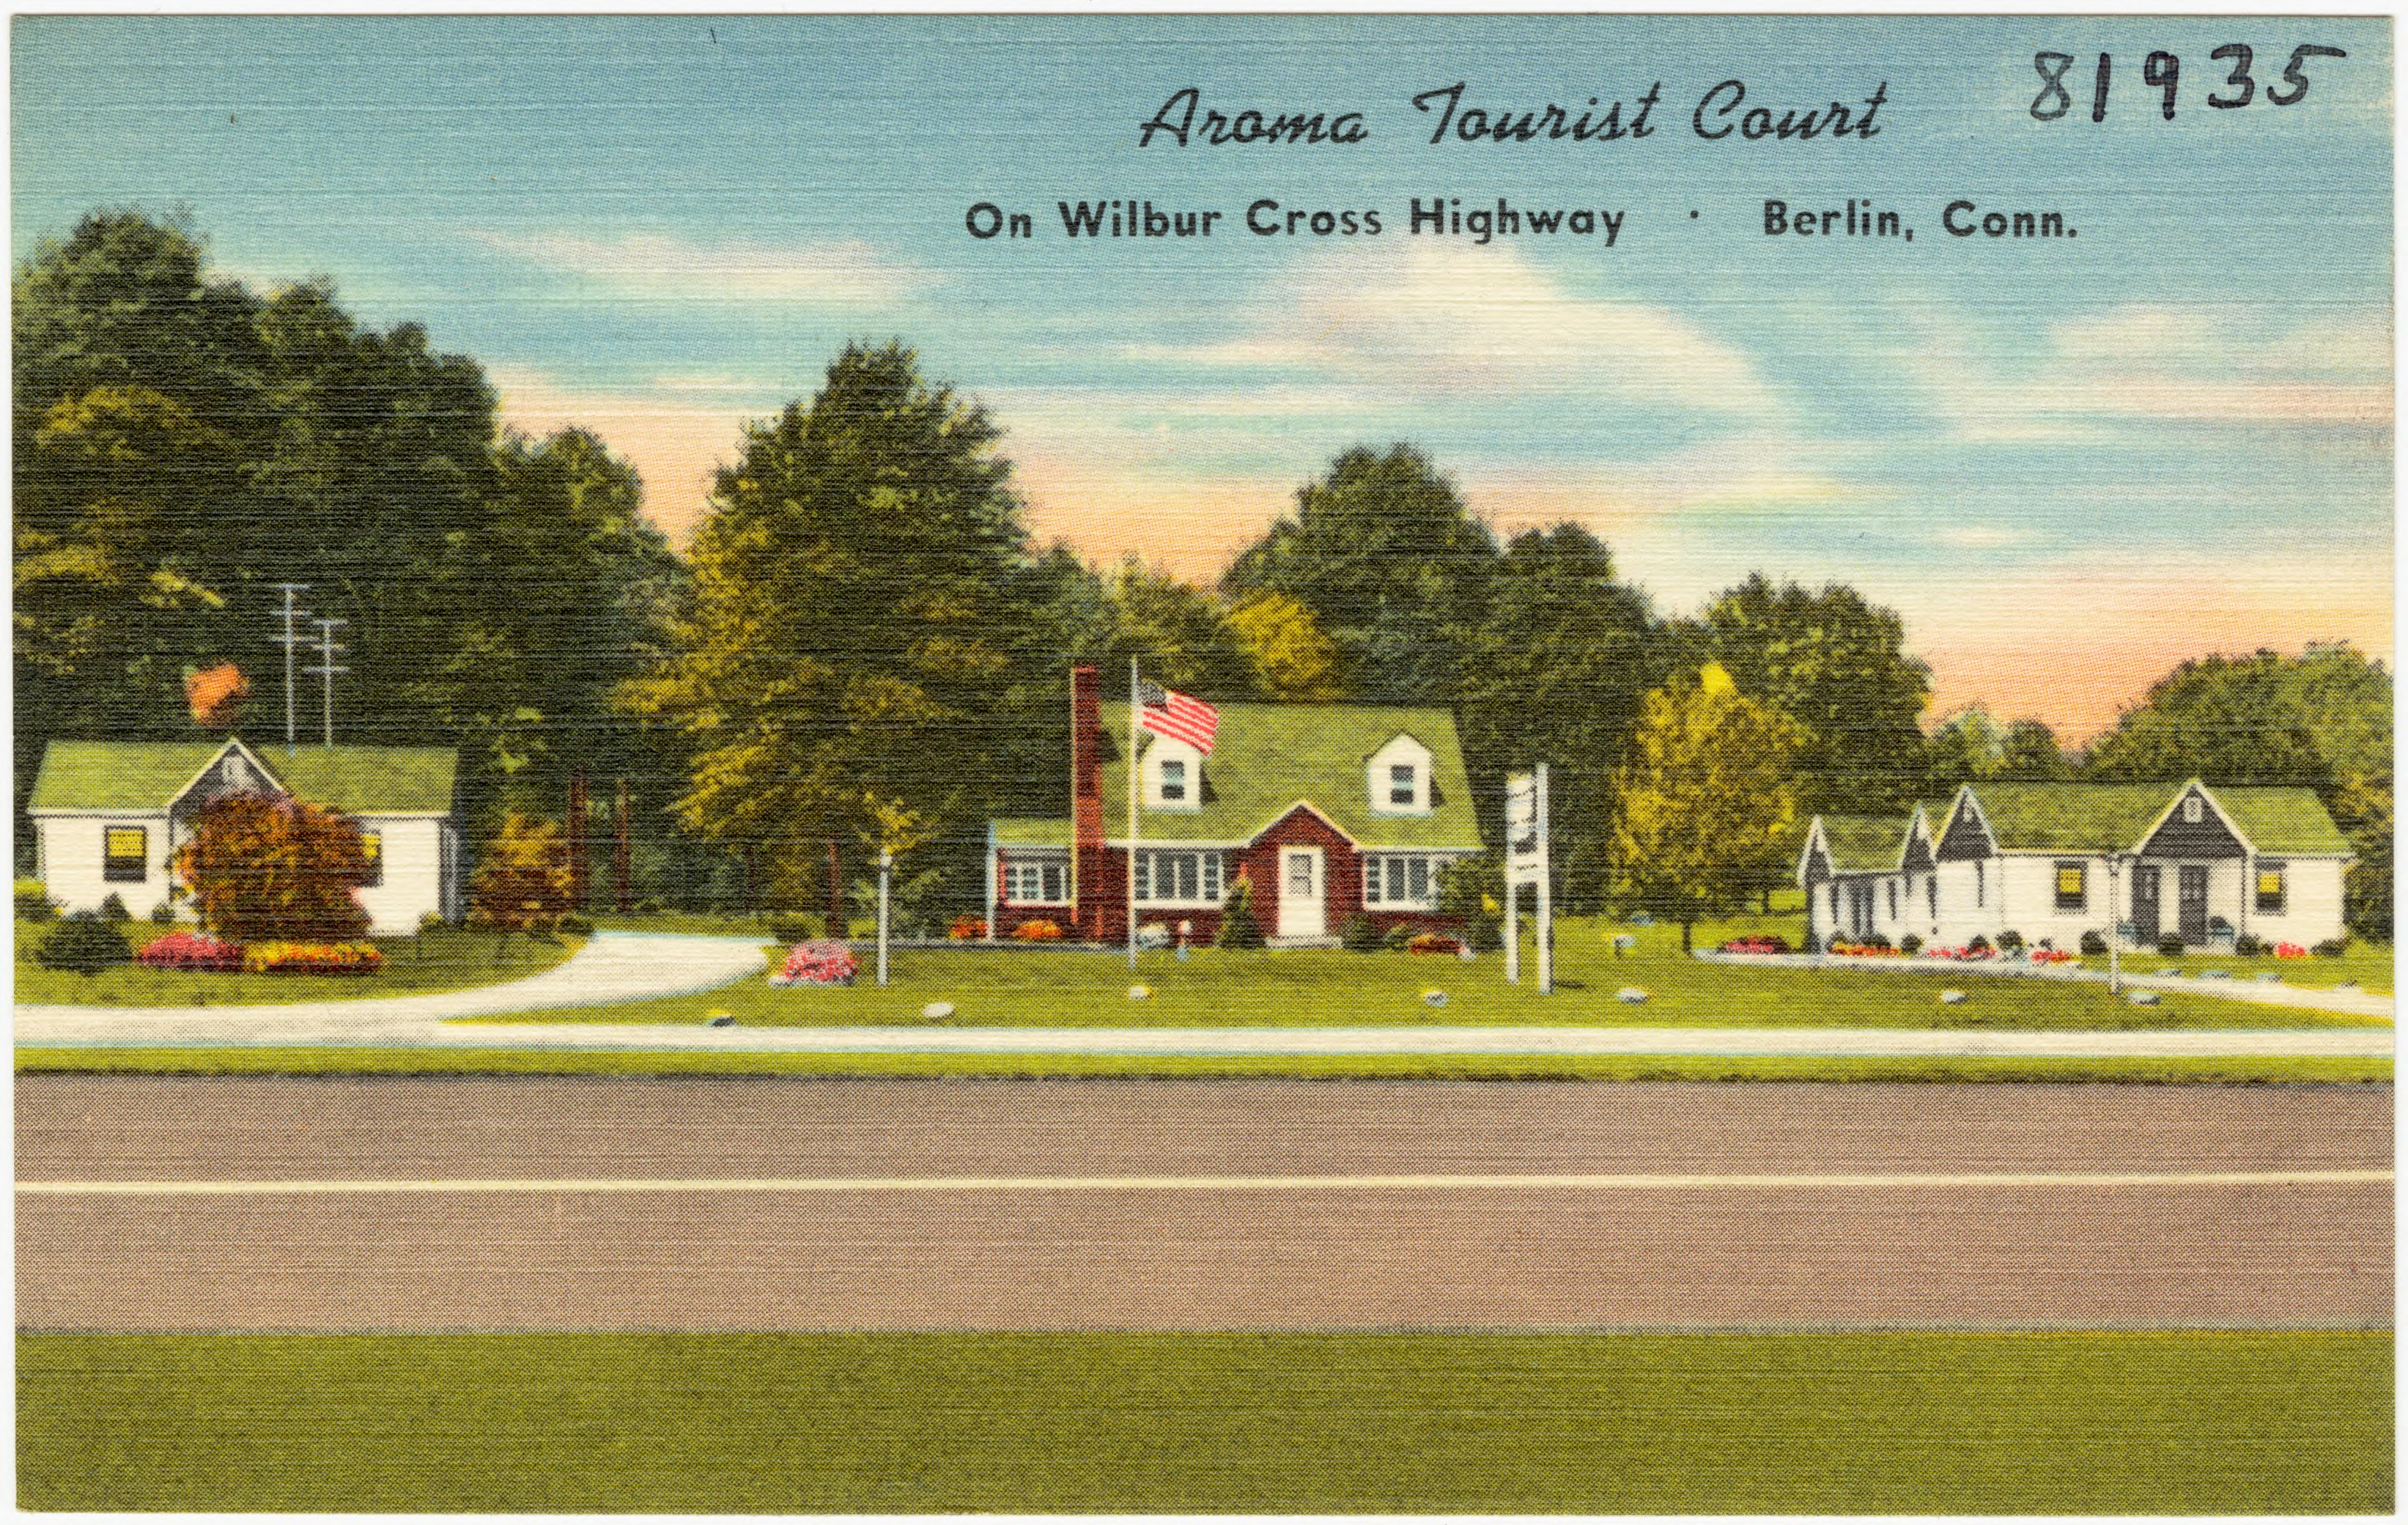 Aroma Berlin file aroma tourist court on wilbur cross highway berlin conn